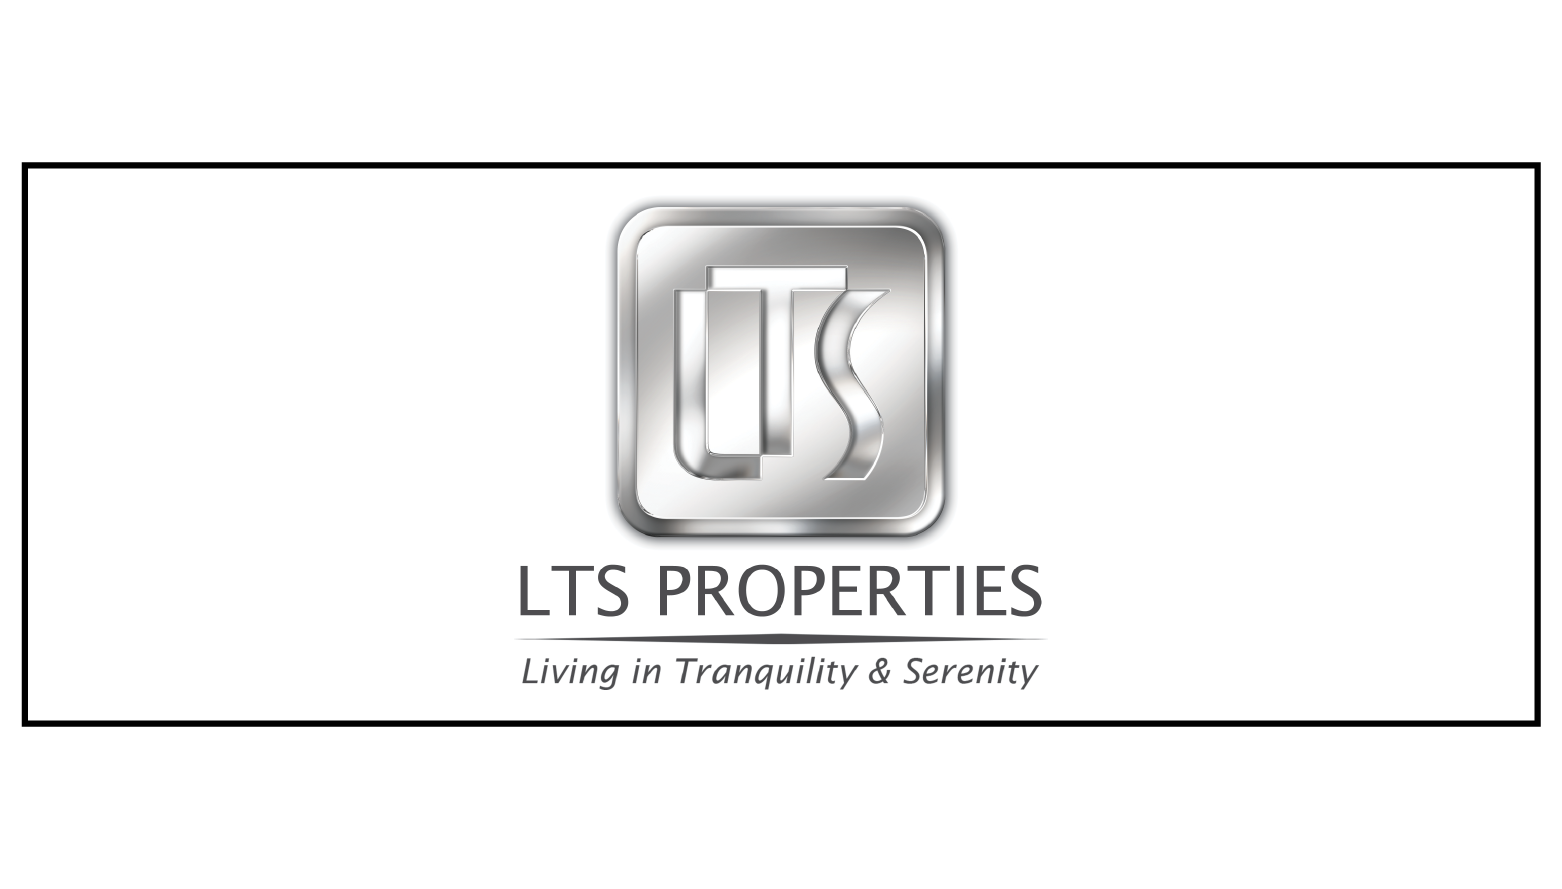 http://www.ltsproperties.com.my